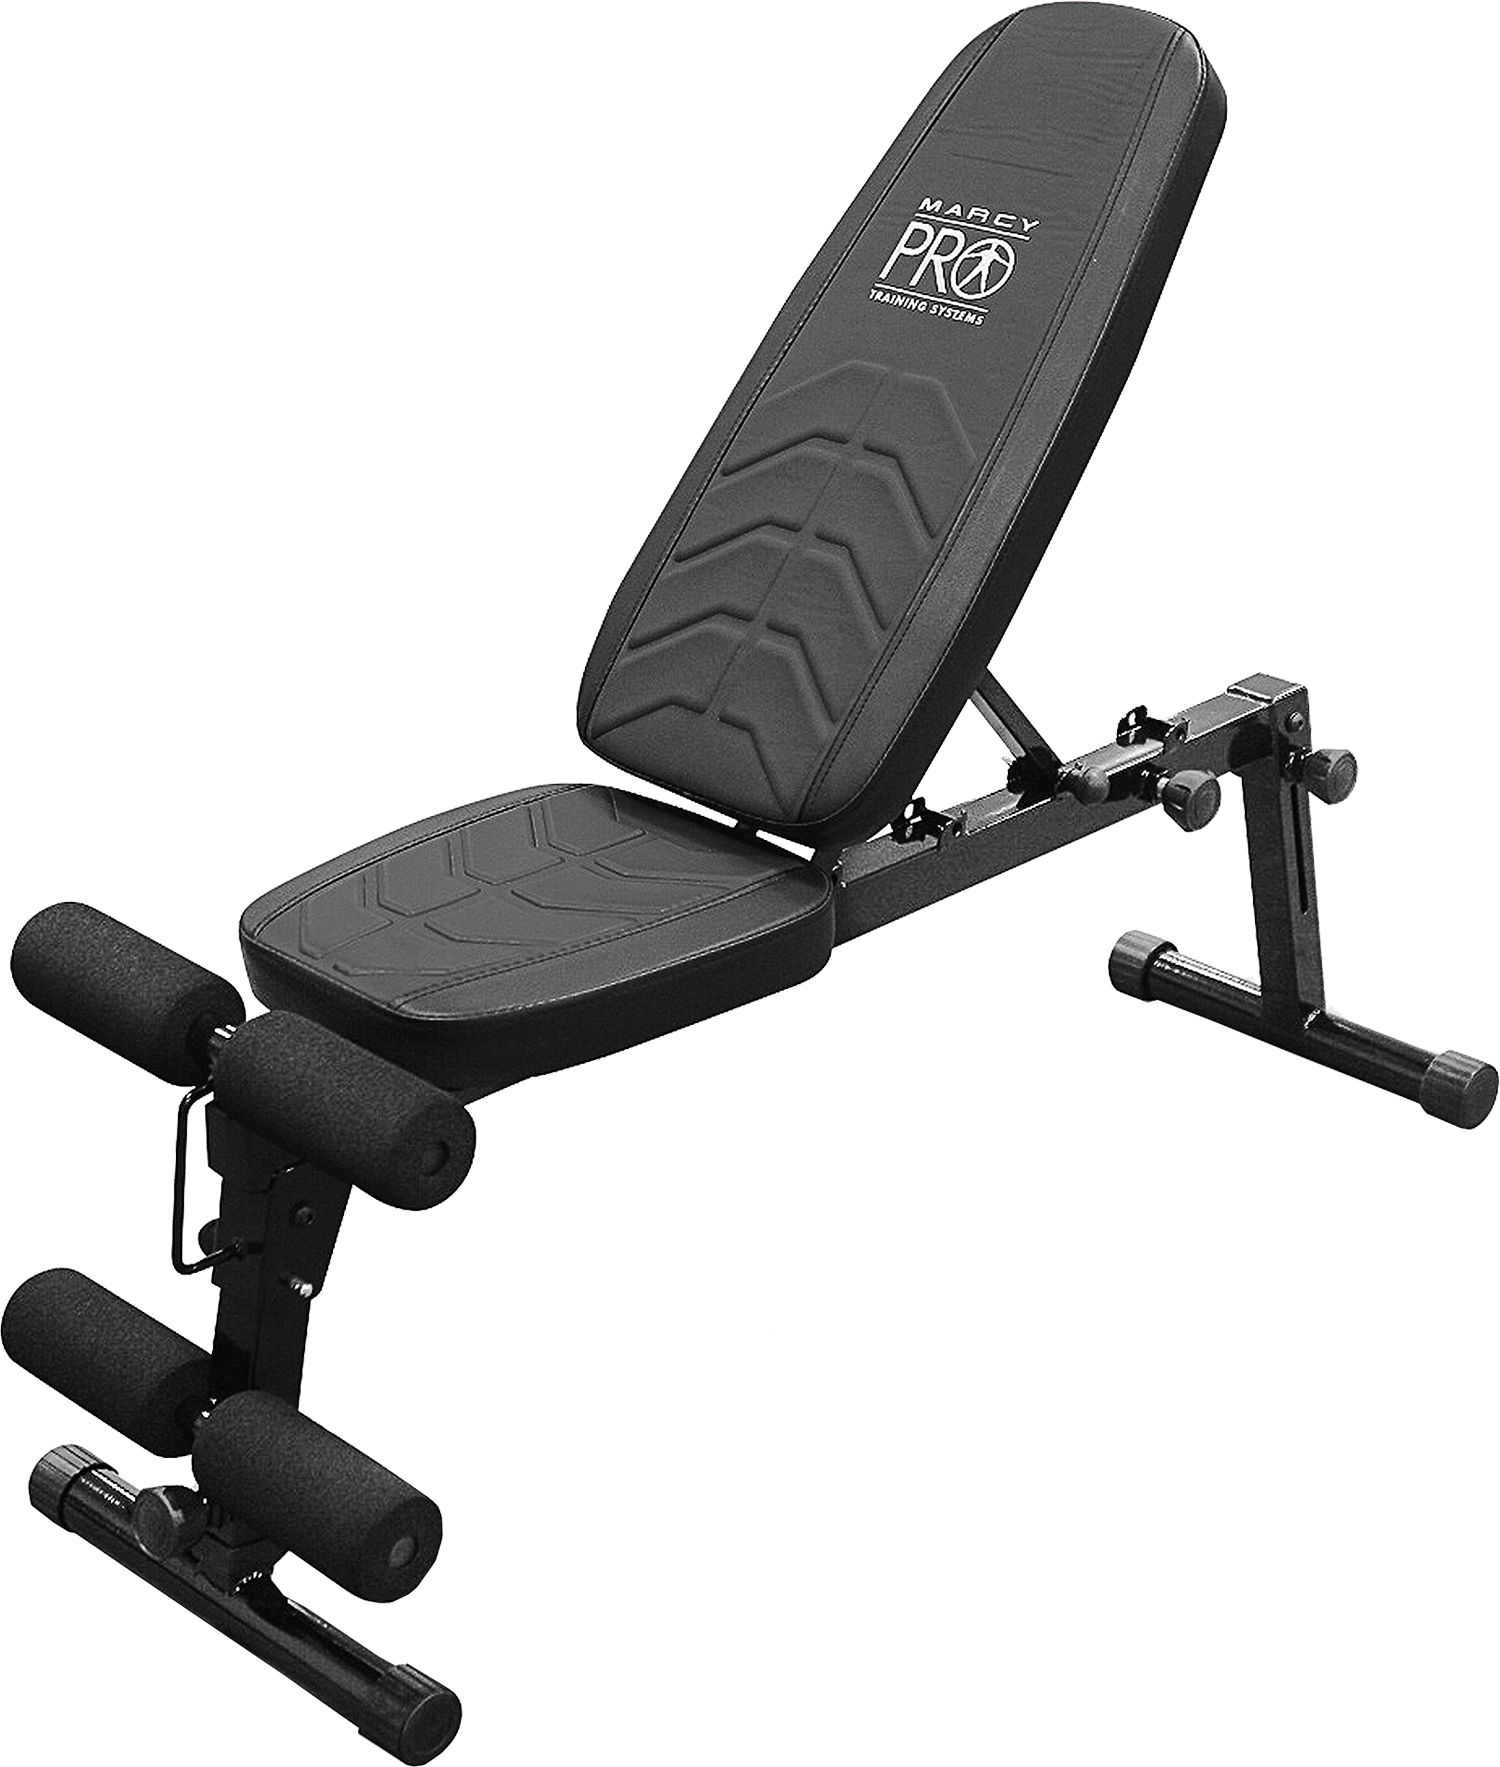 adjustable exercise flat azfitnessequipmentcom and sport marbo bench with made shop fixed racks from fitness multifunctional foldable by benches collections gym equipment